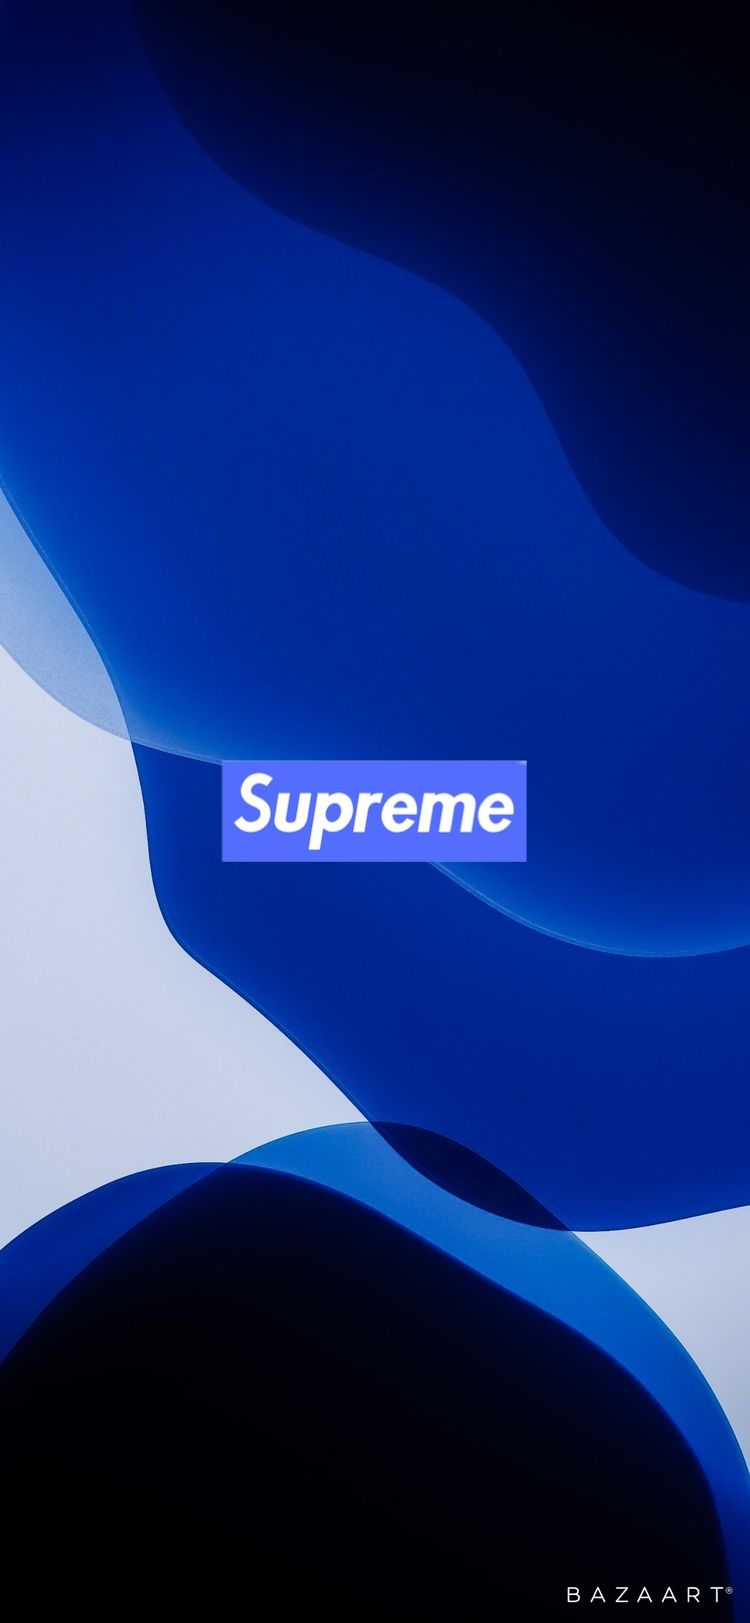 Supreme X Ios 13 Wallpaper In 2020 Black And Blue Wallpaper Hypebeast Wallpaper Jordan Logo Wallpaper